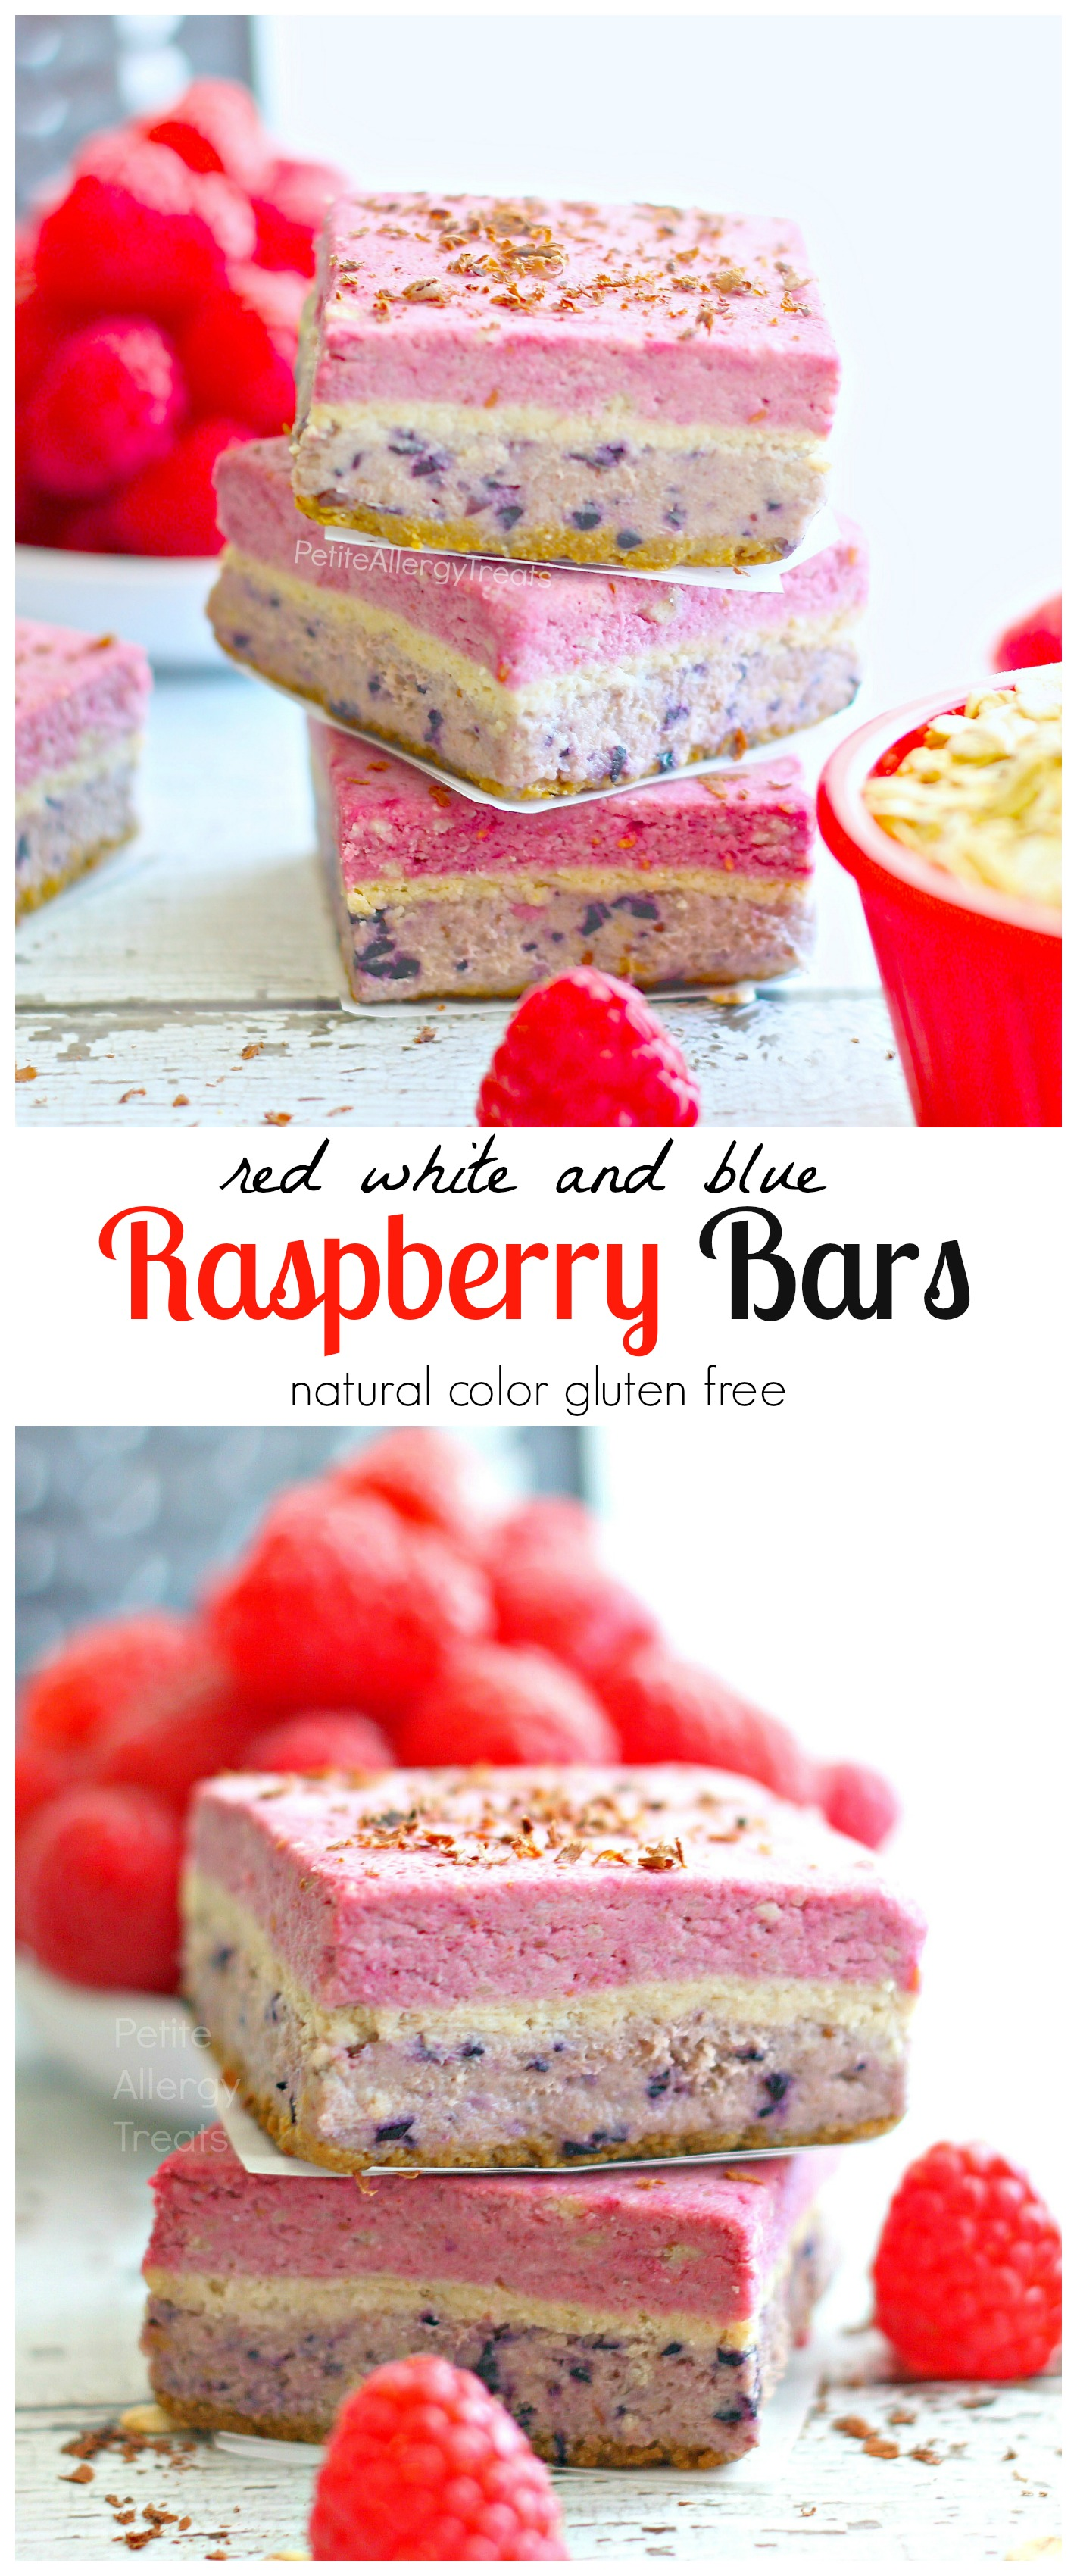 Raspberry Bars (Raw Vegan Gluten Free)|Naturally red, white and blue, bursting with raspberry!